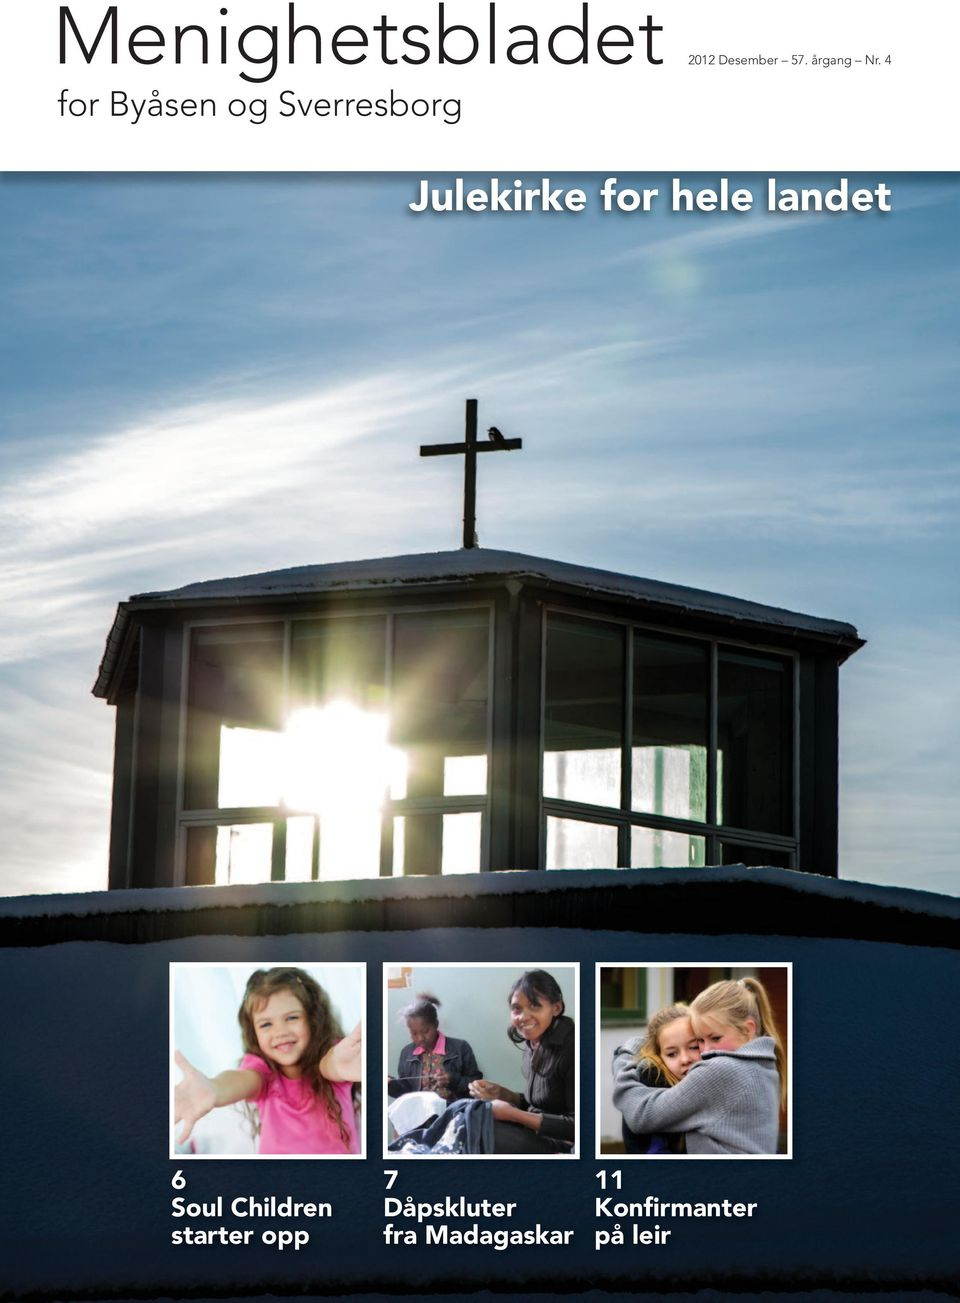 4 Julekirke for hele landet 6 soul Children